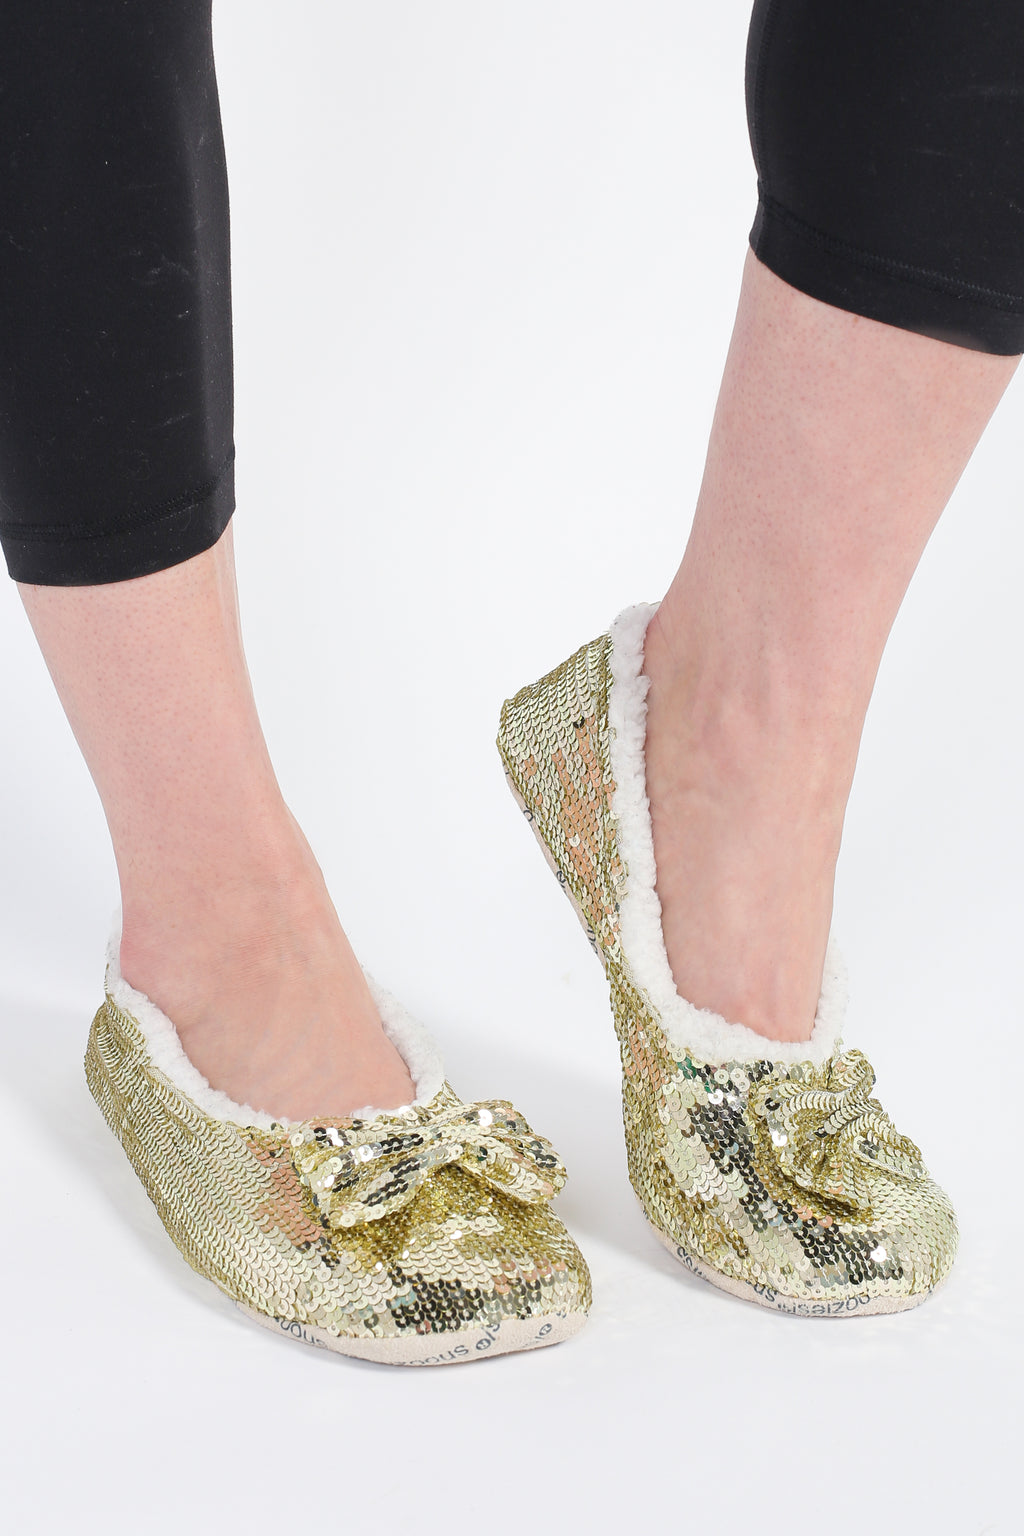 Sequin Ballerina Slippers with Bow - honey